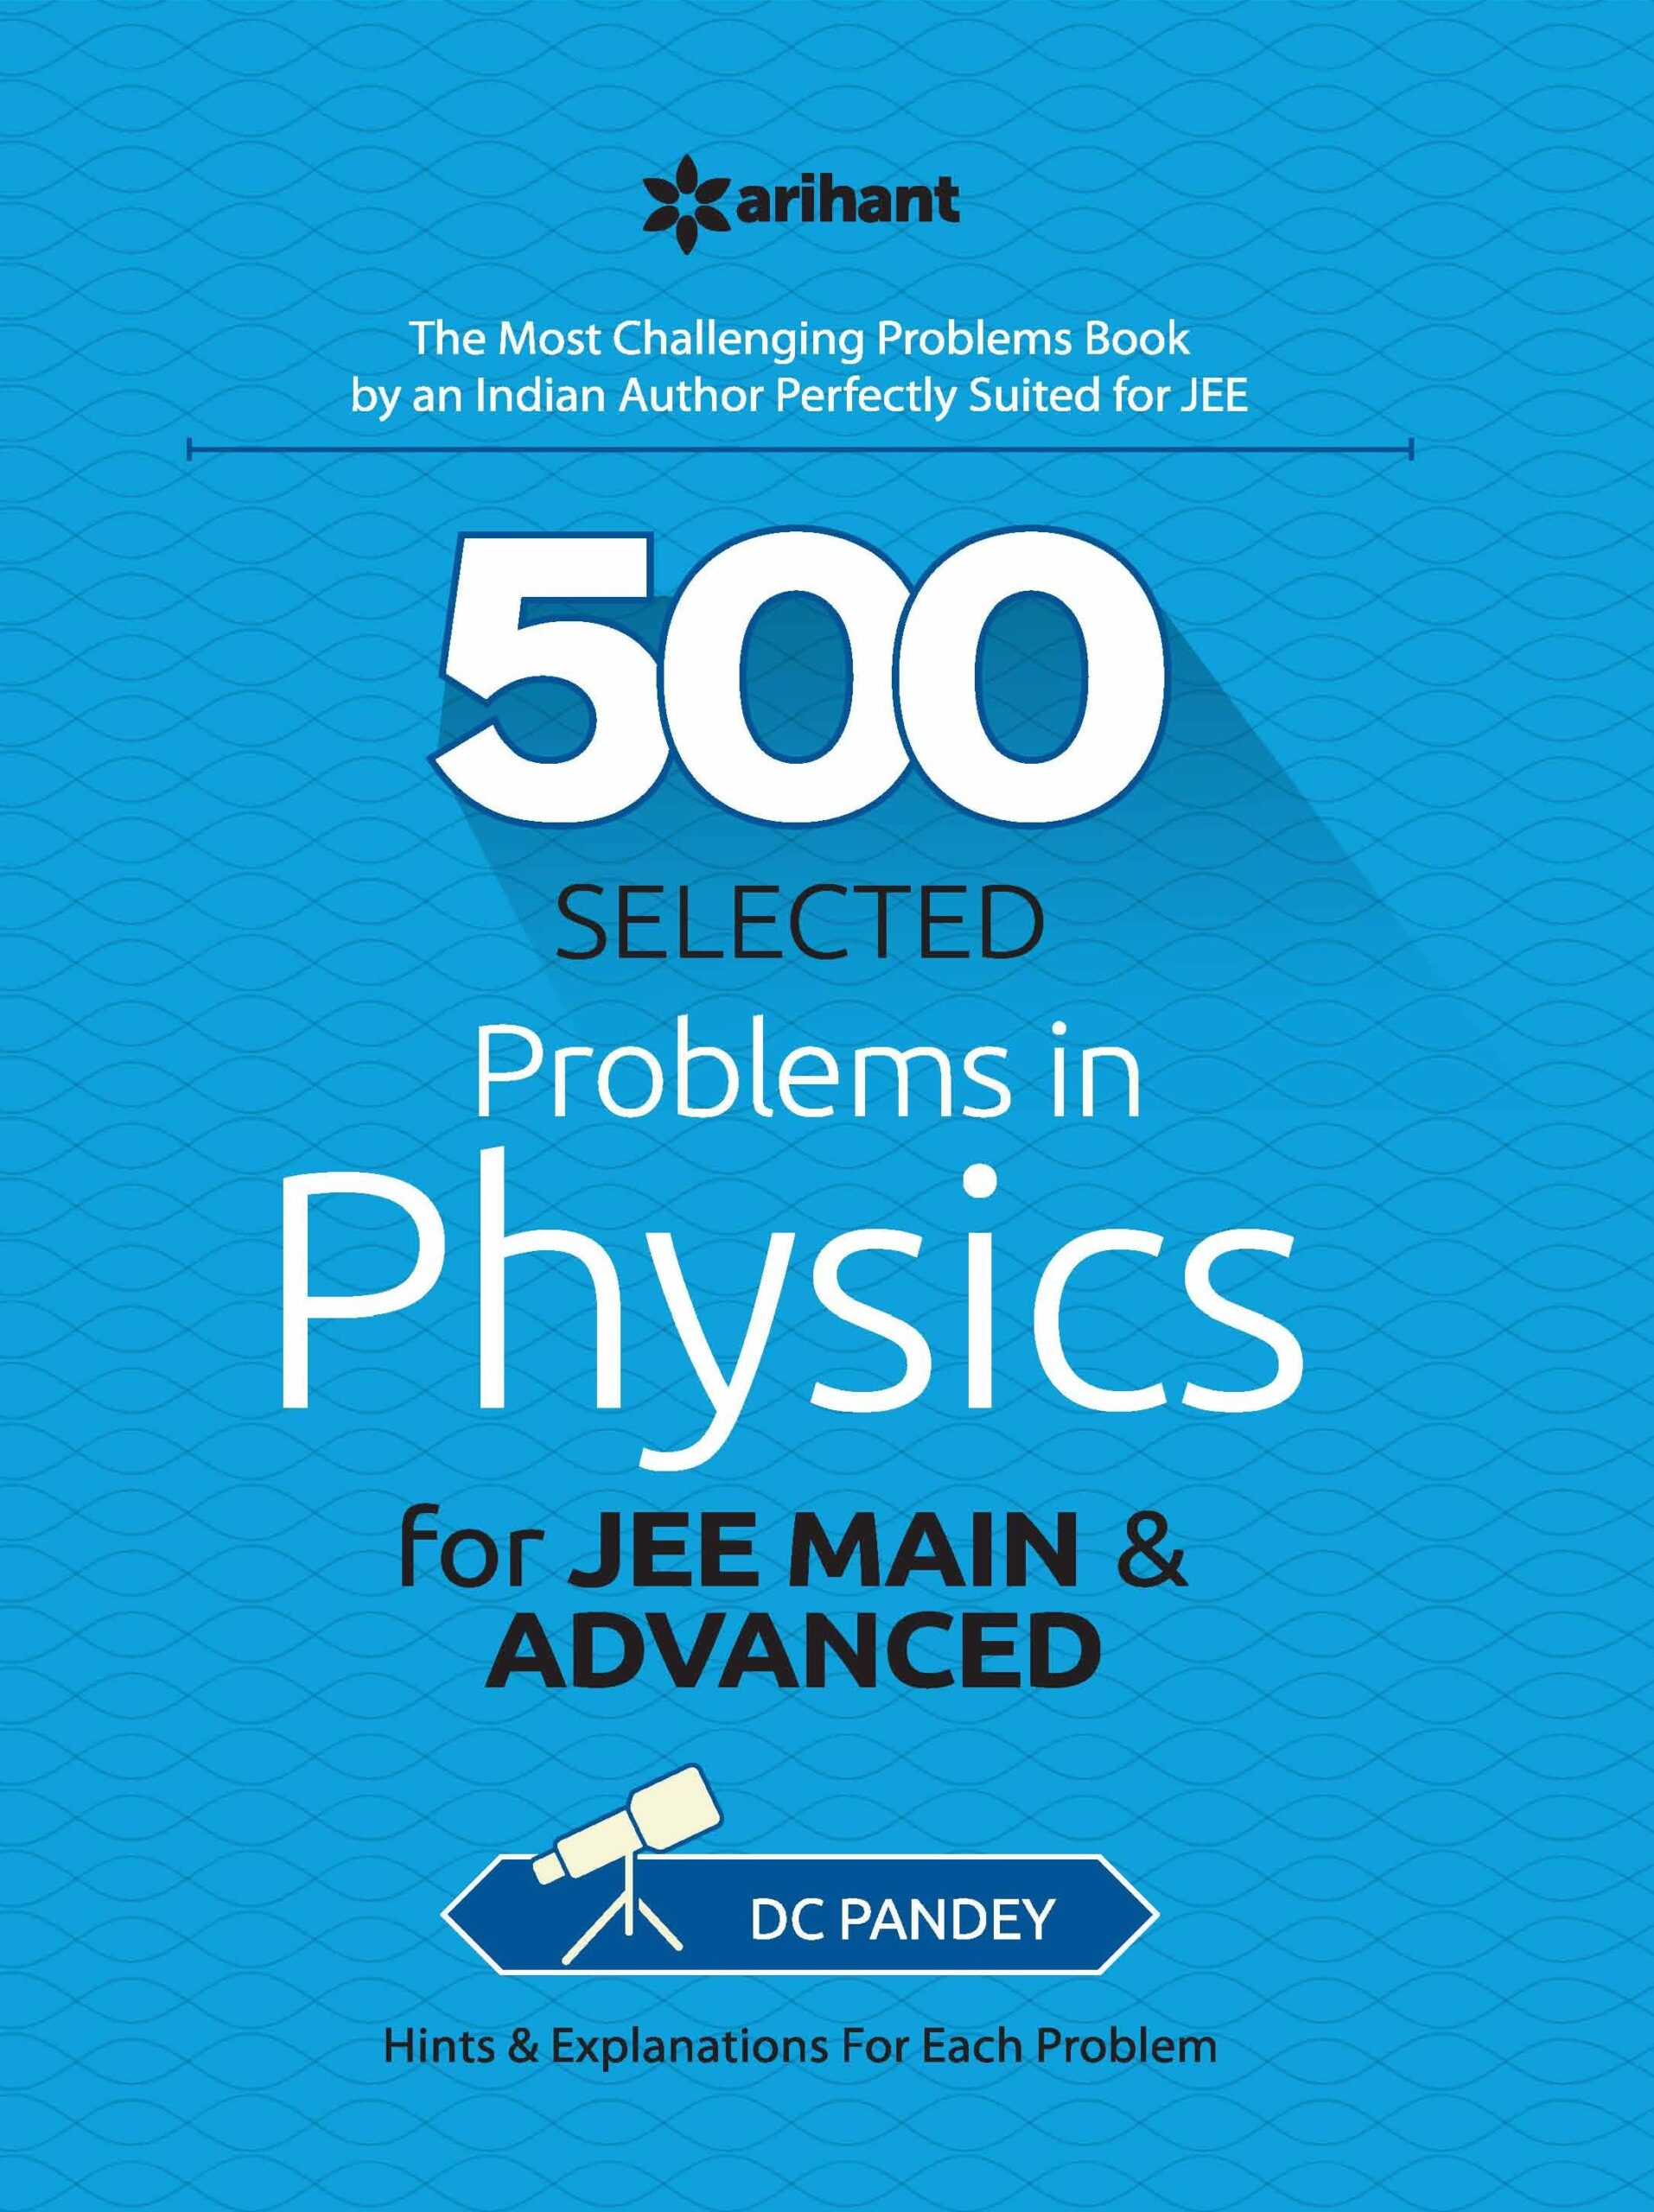 500 Selected Problems in Physics PDF by DC Pandey[Free]